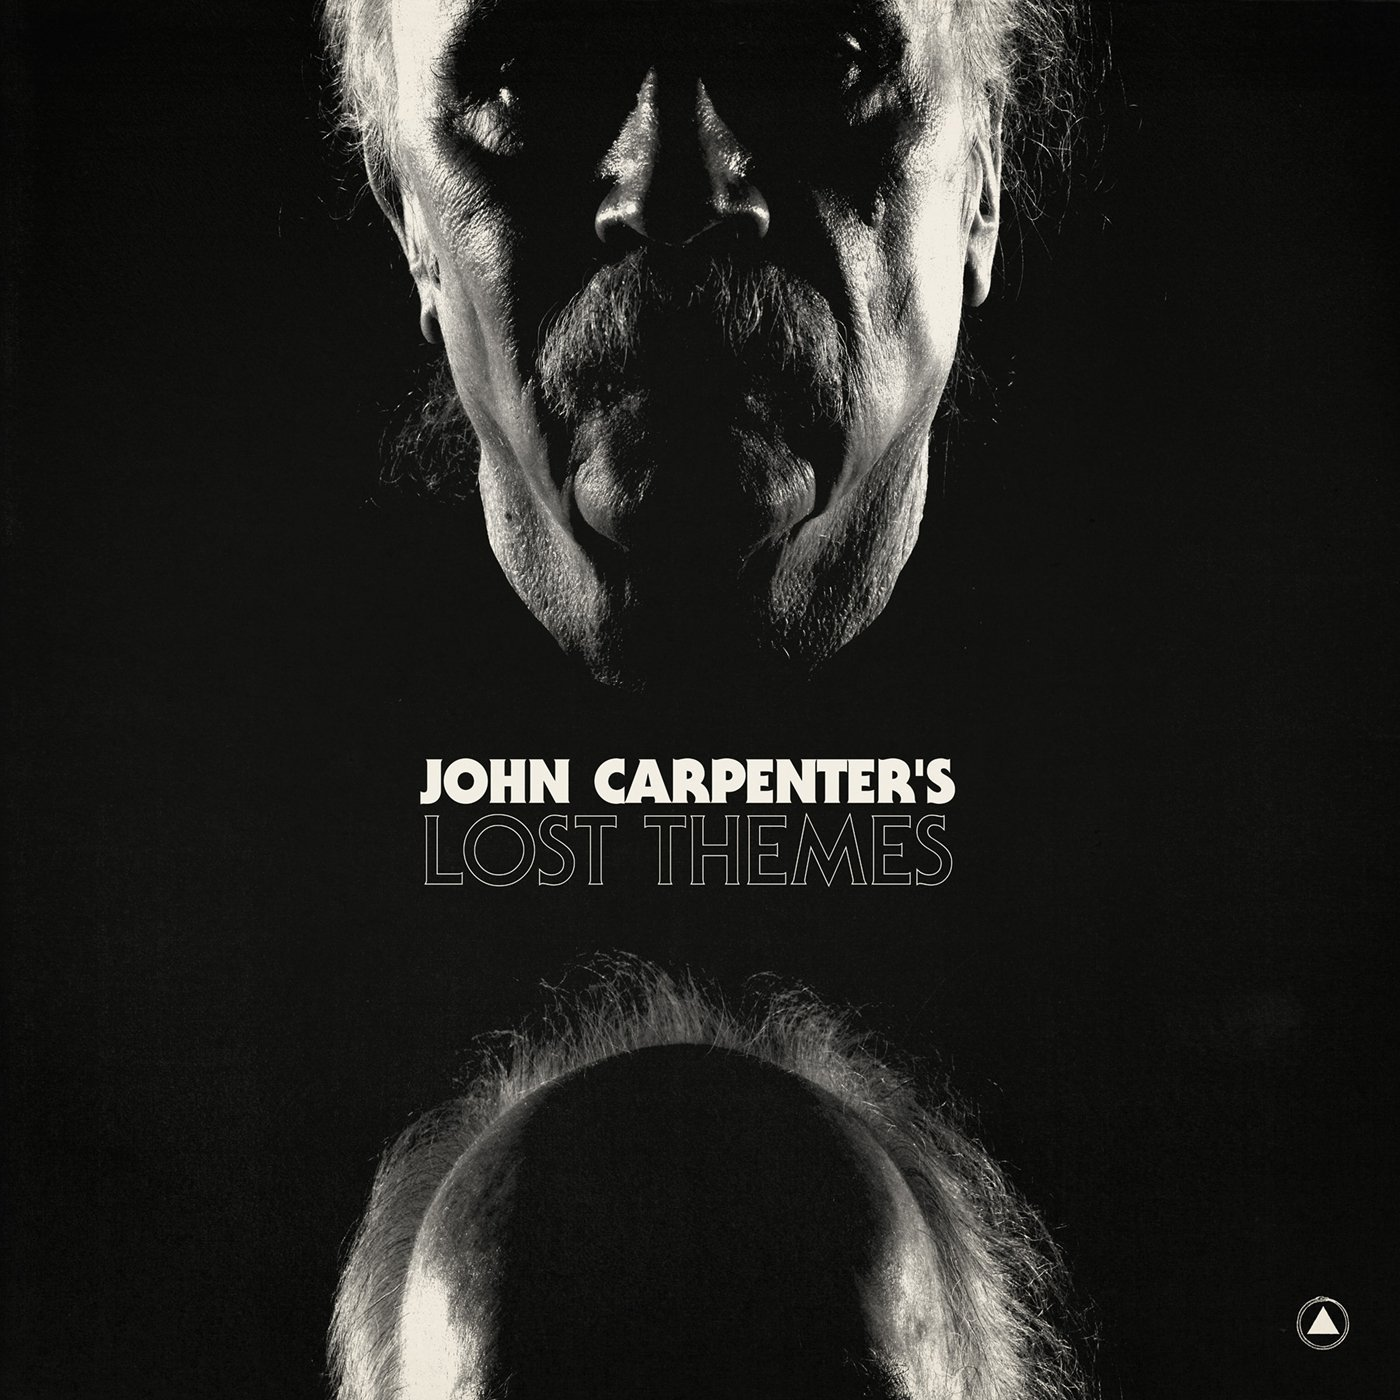 john carpenter lost themes vinyl